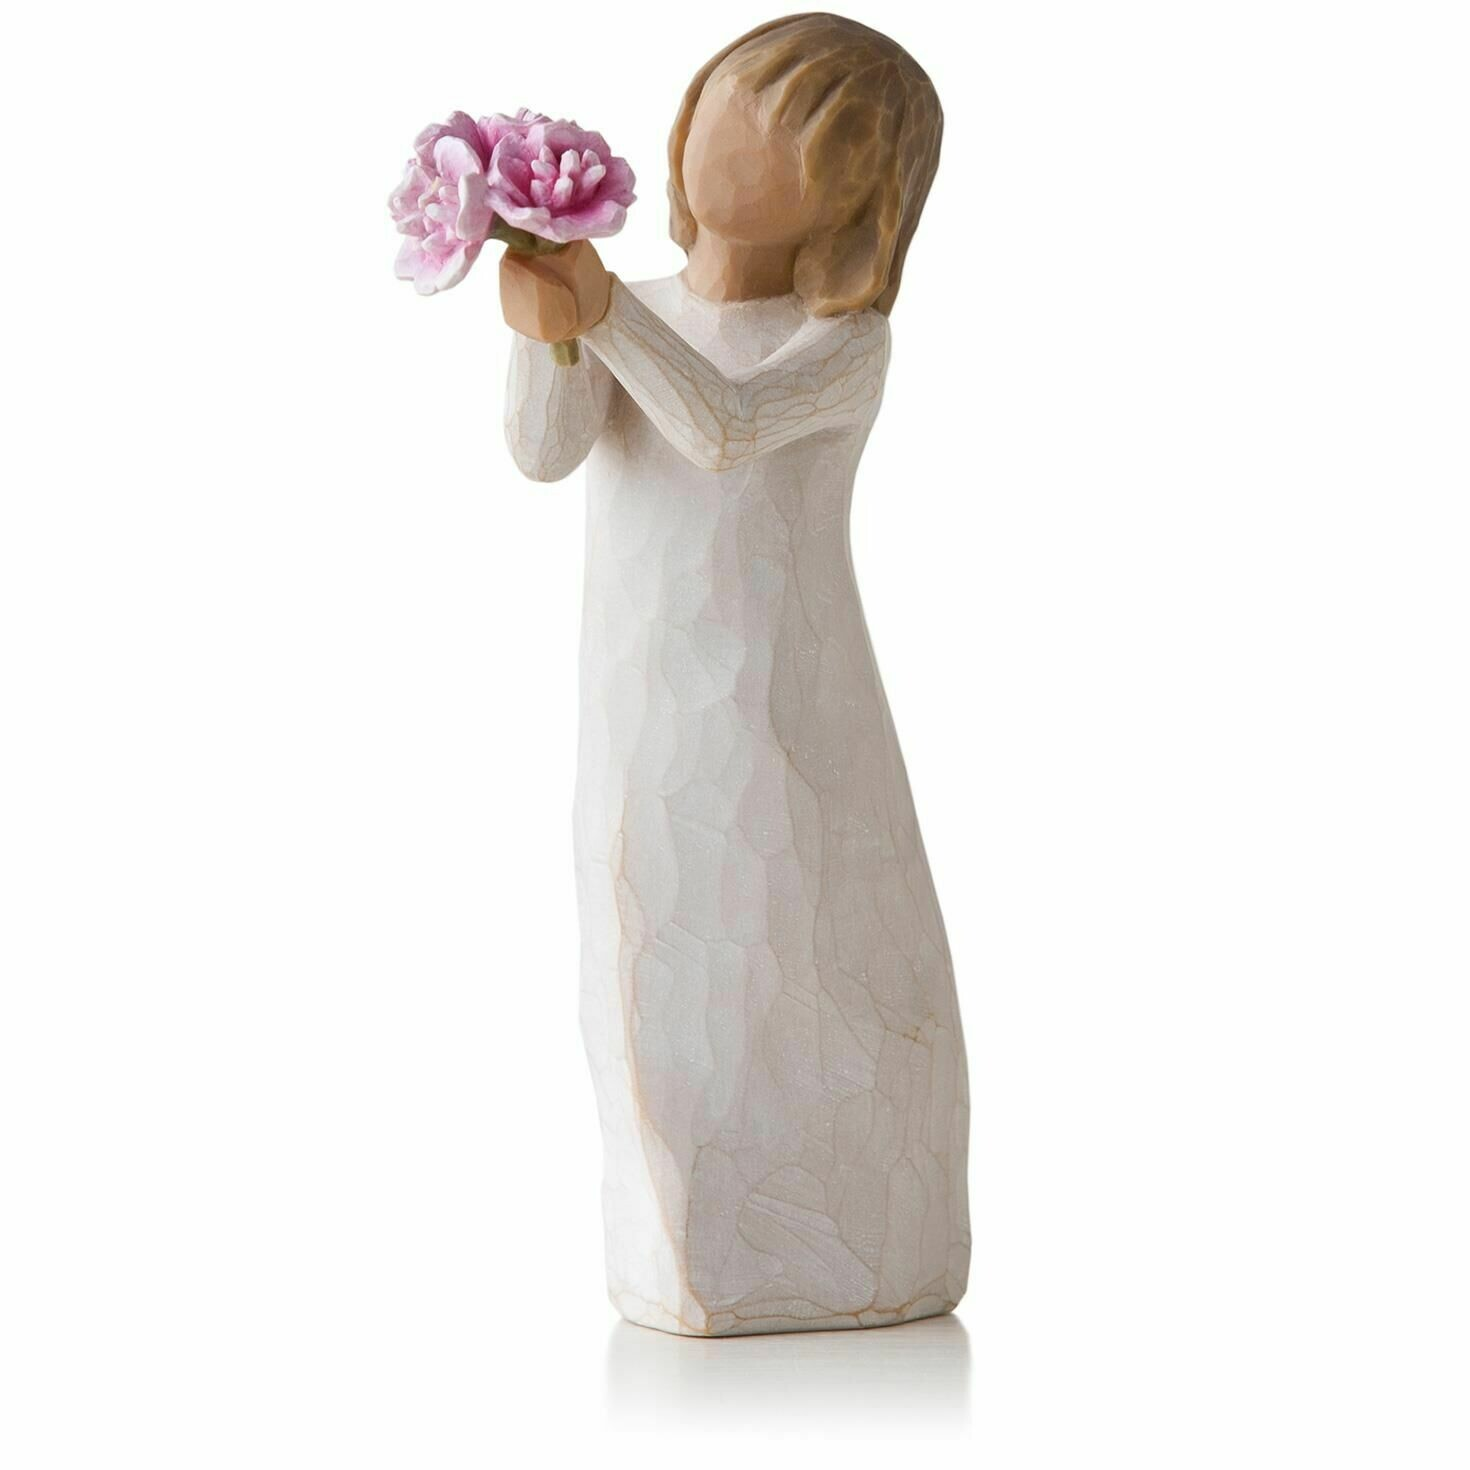 Willow Tree: Thank you - Girl holding Pink Flowers